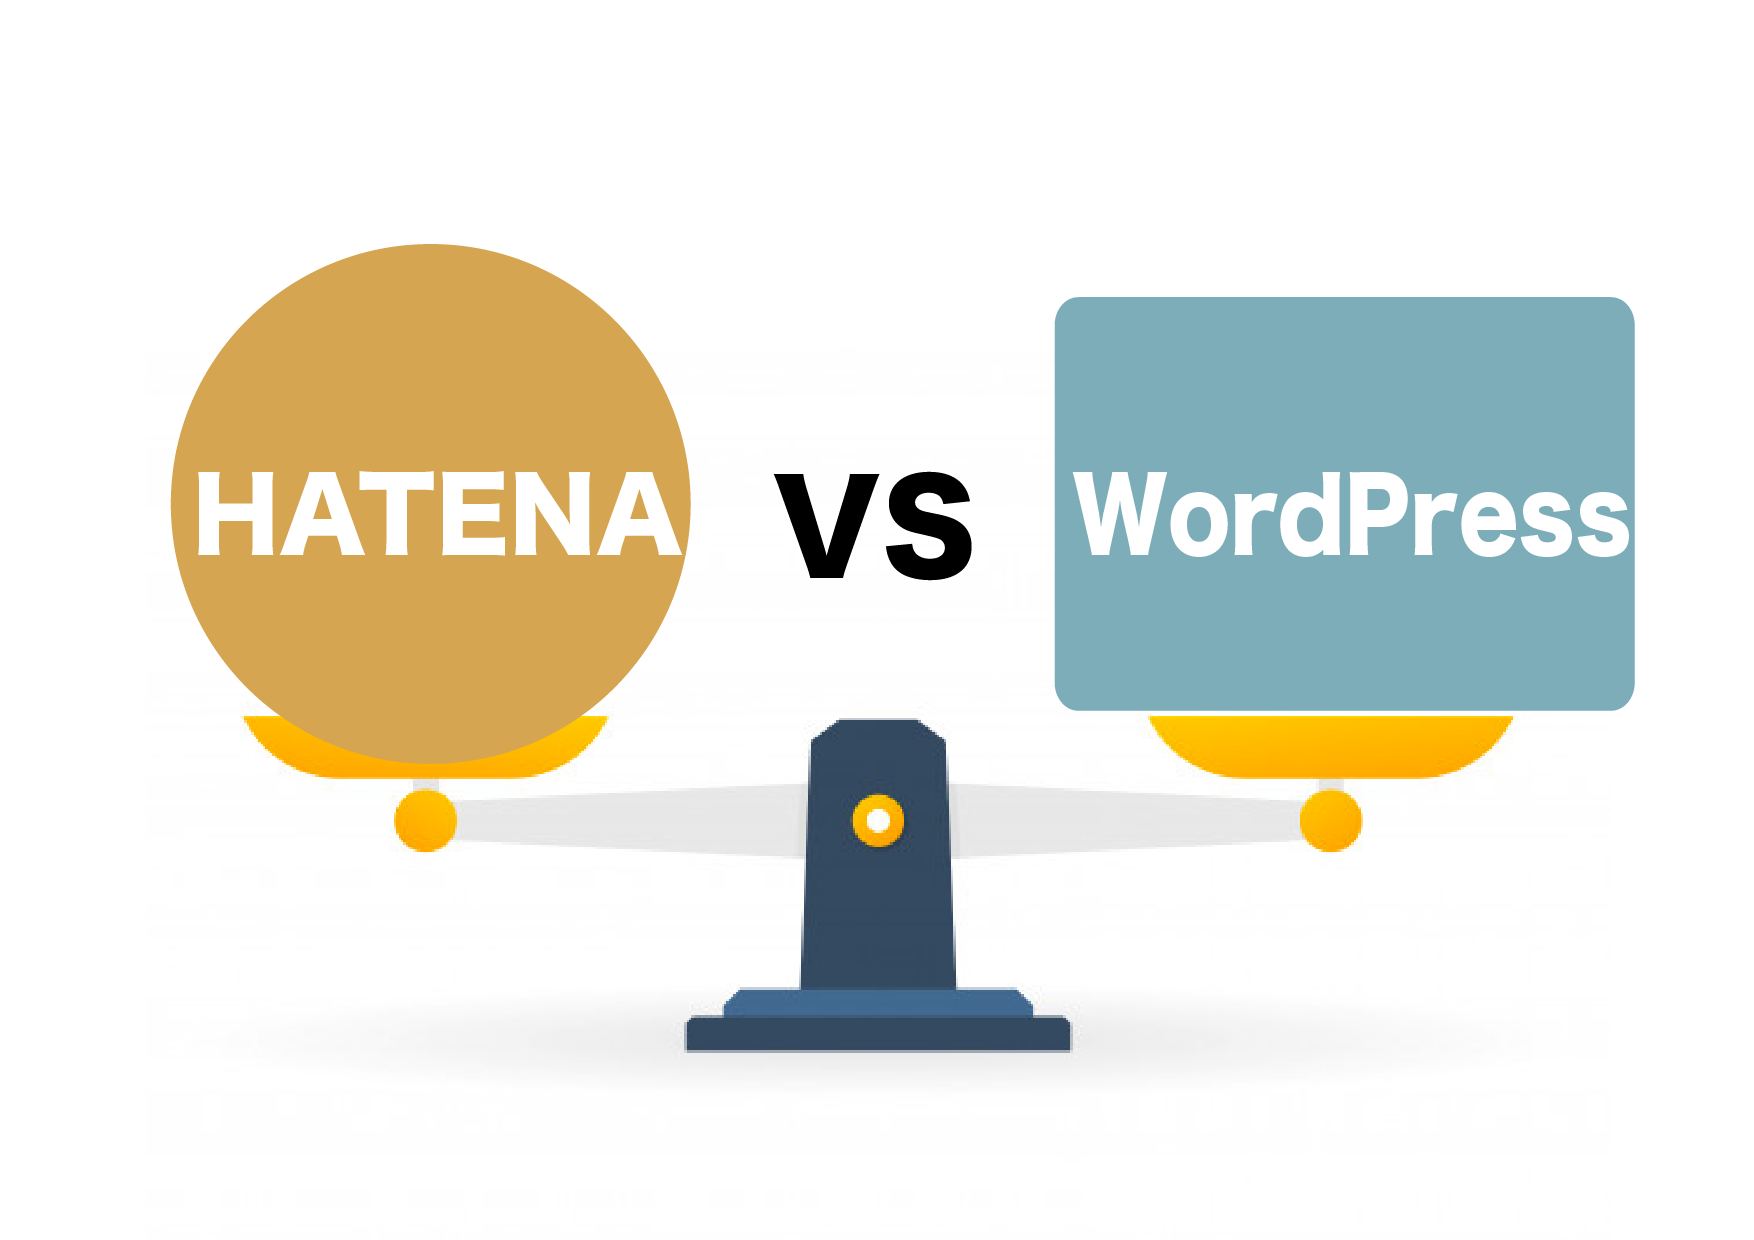 hatena vs wordpress icon